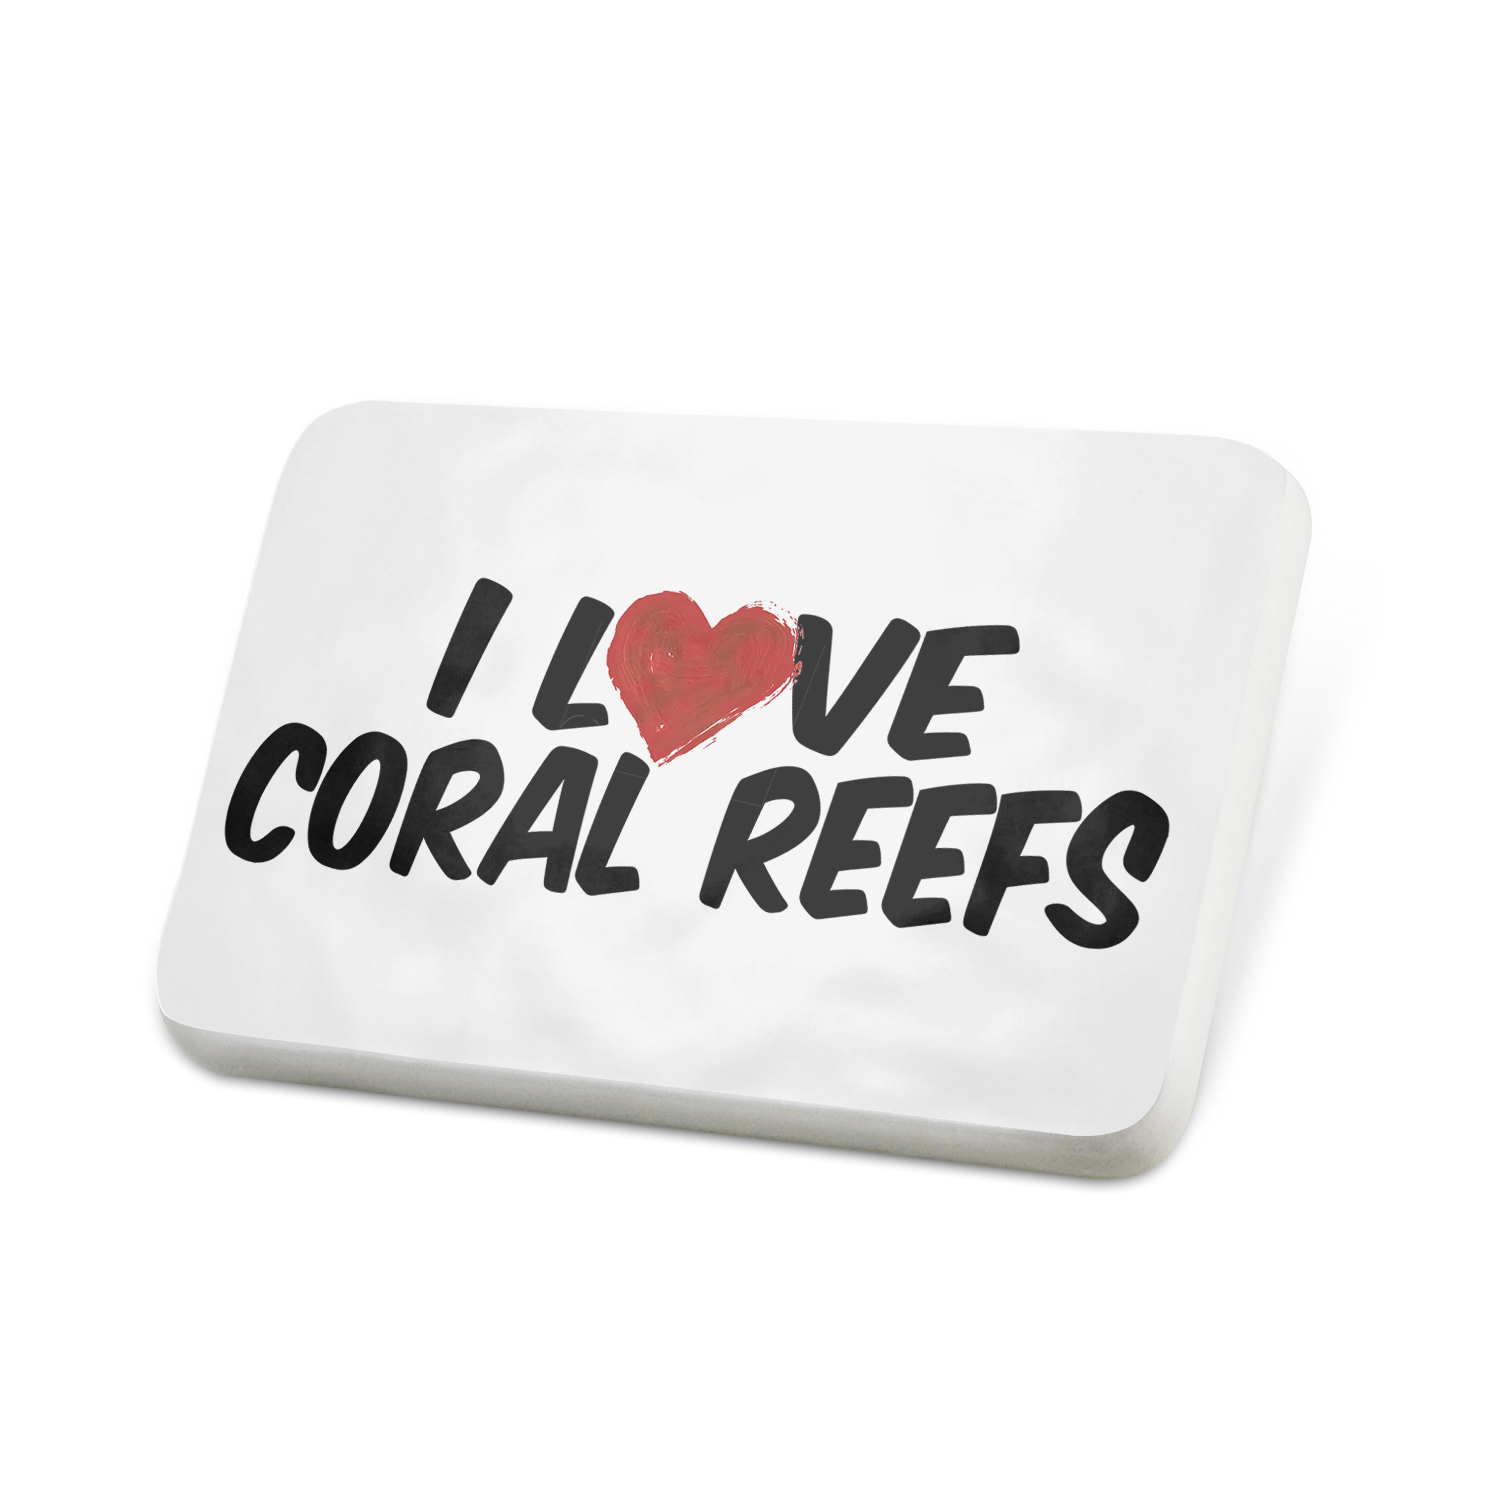 Porcelein Pin I Love Coral Reefs Lapel Badge � NEONBLOND by NEONBLOND